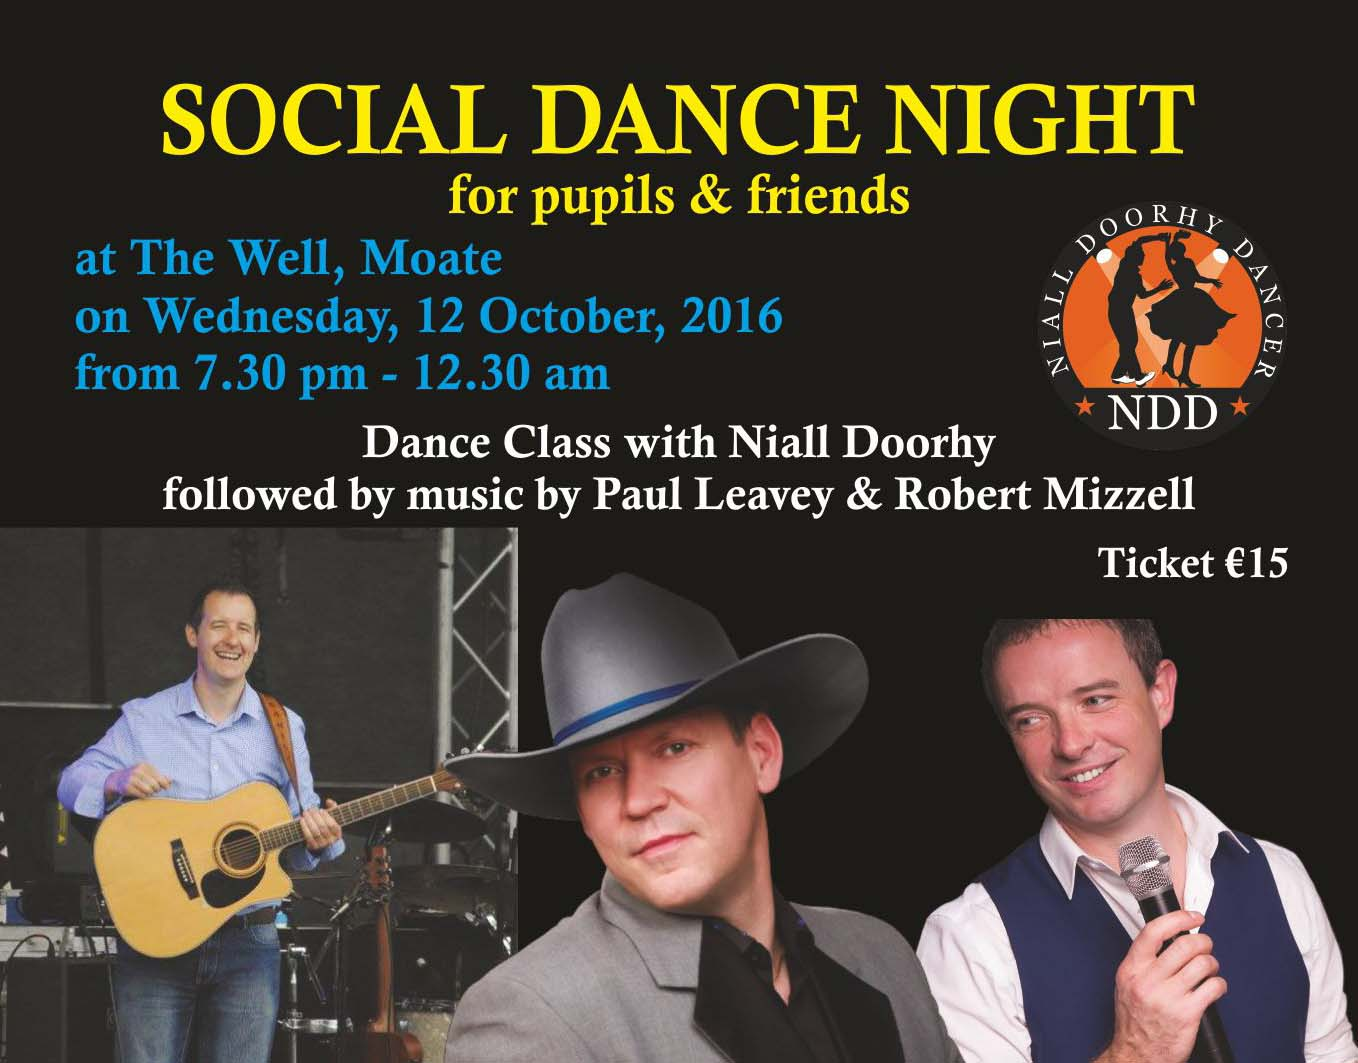 Social Dancing Night At The Well, Moate